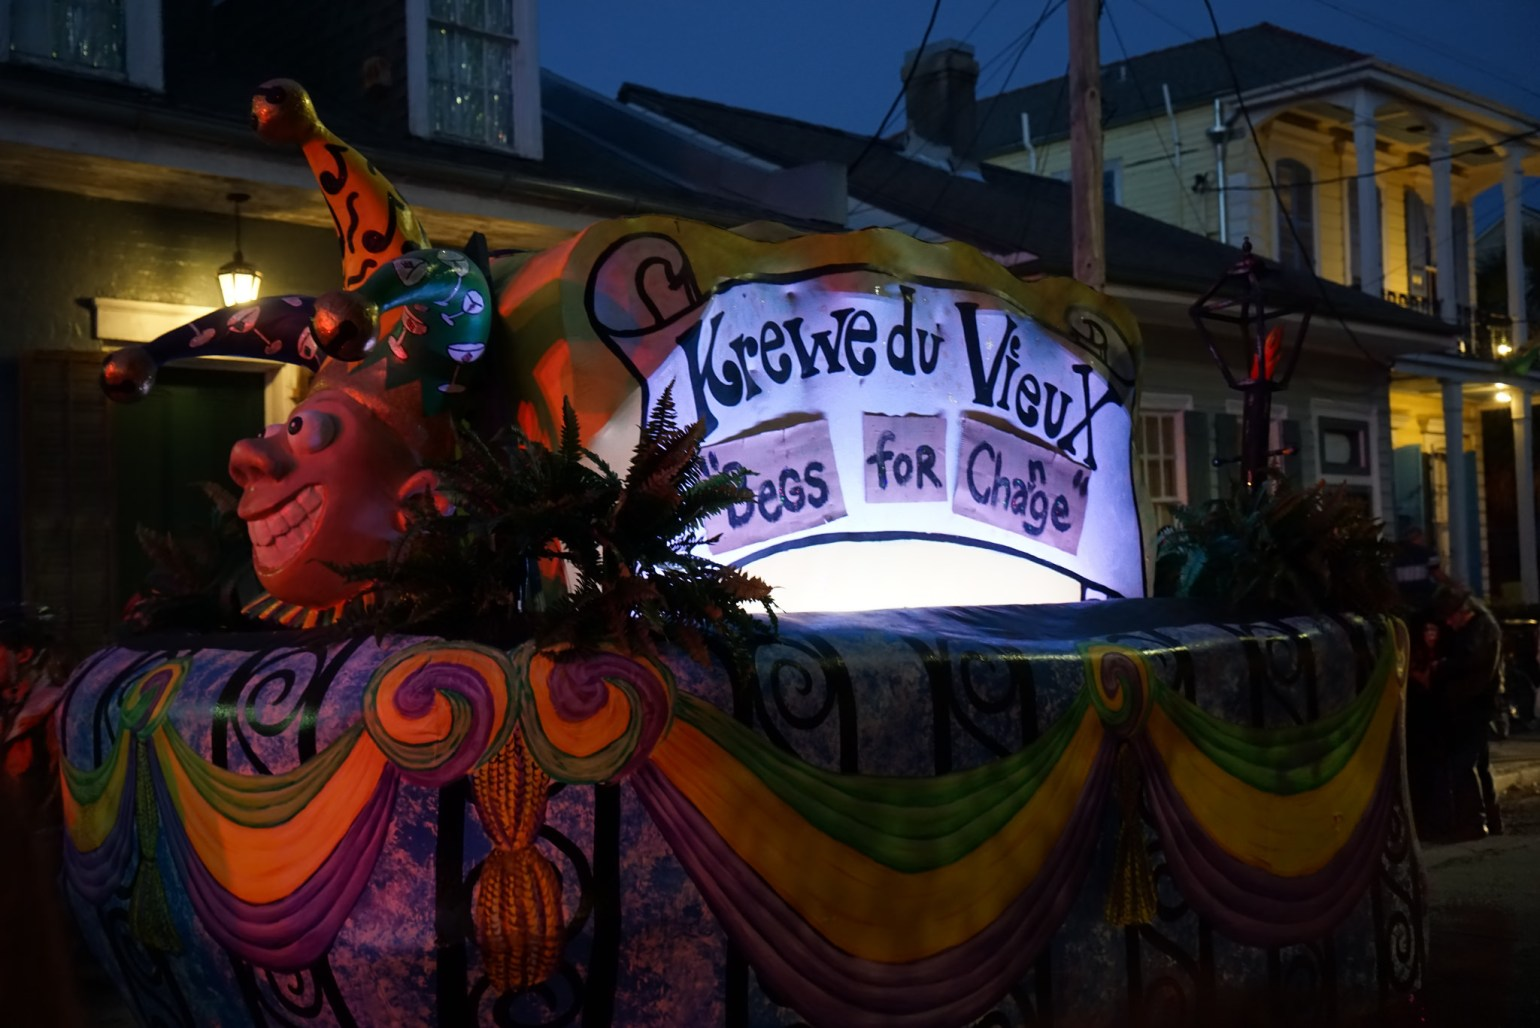 Krewe du Vieux parades on Saturday night. (Photo: Paul Broussard)